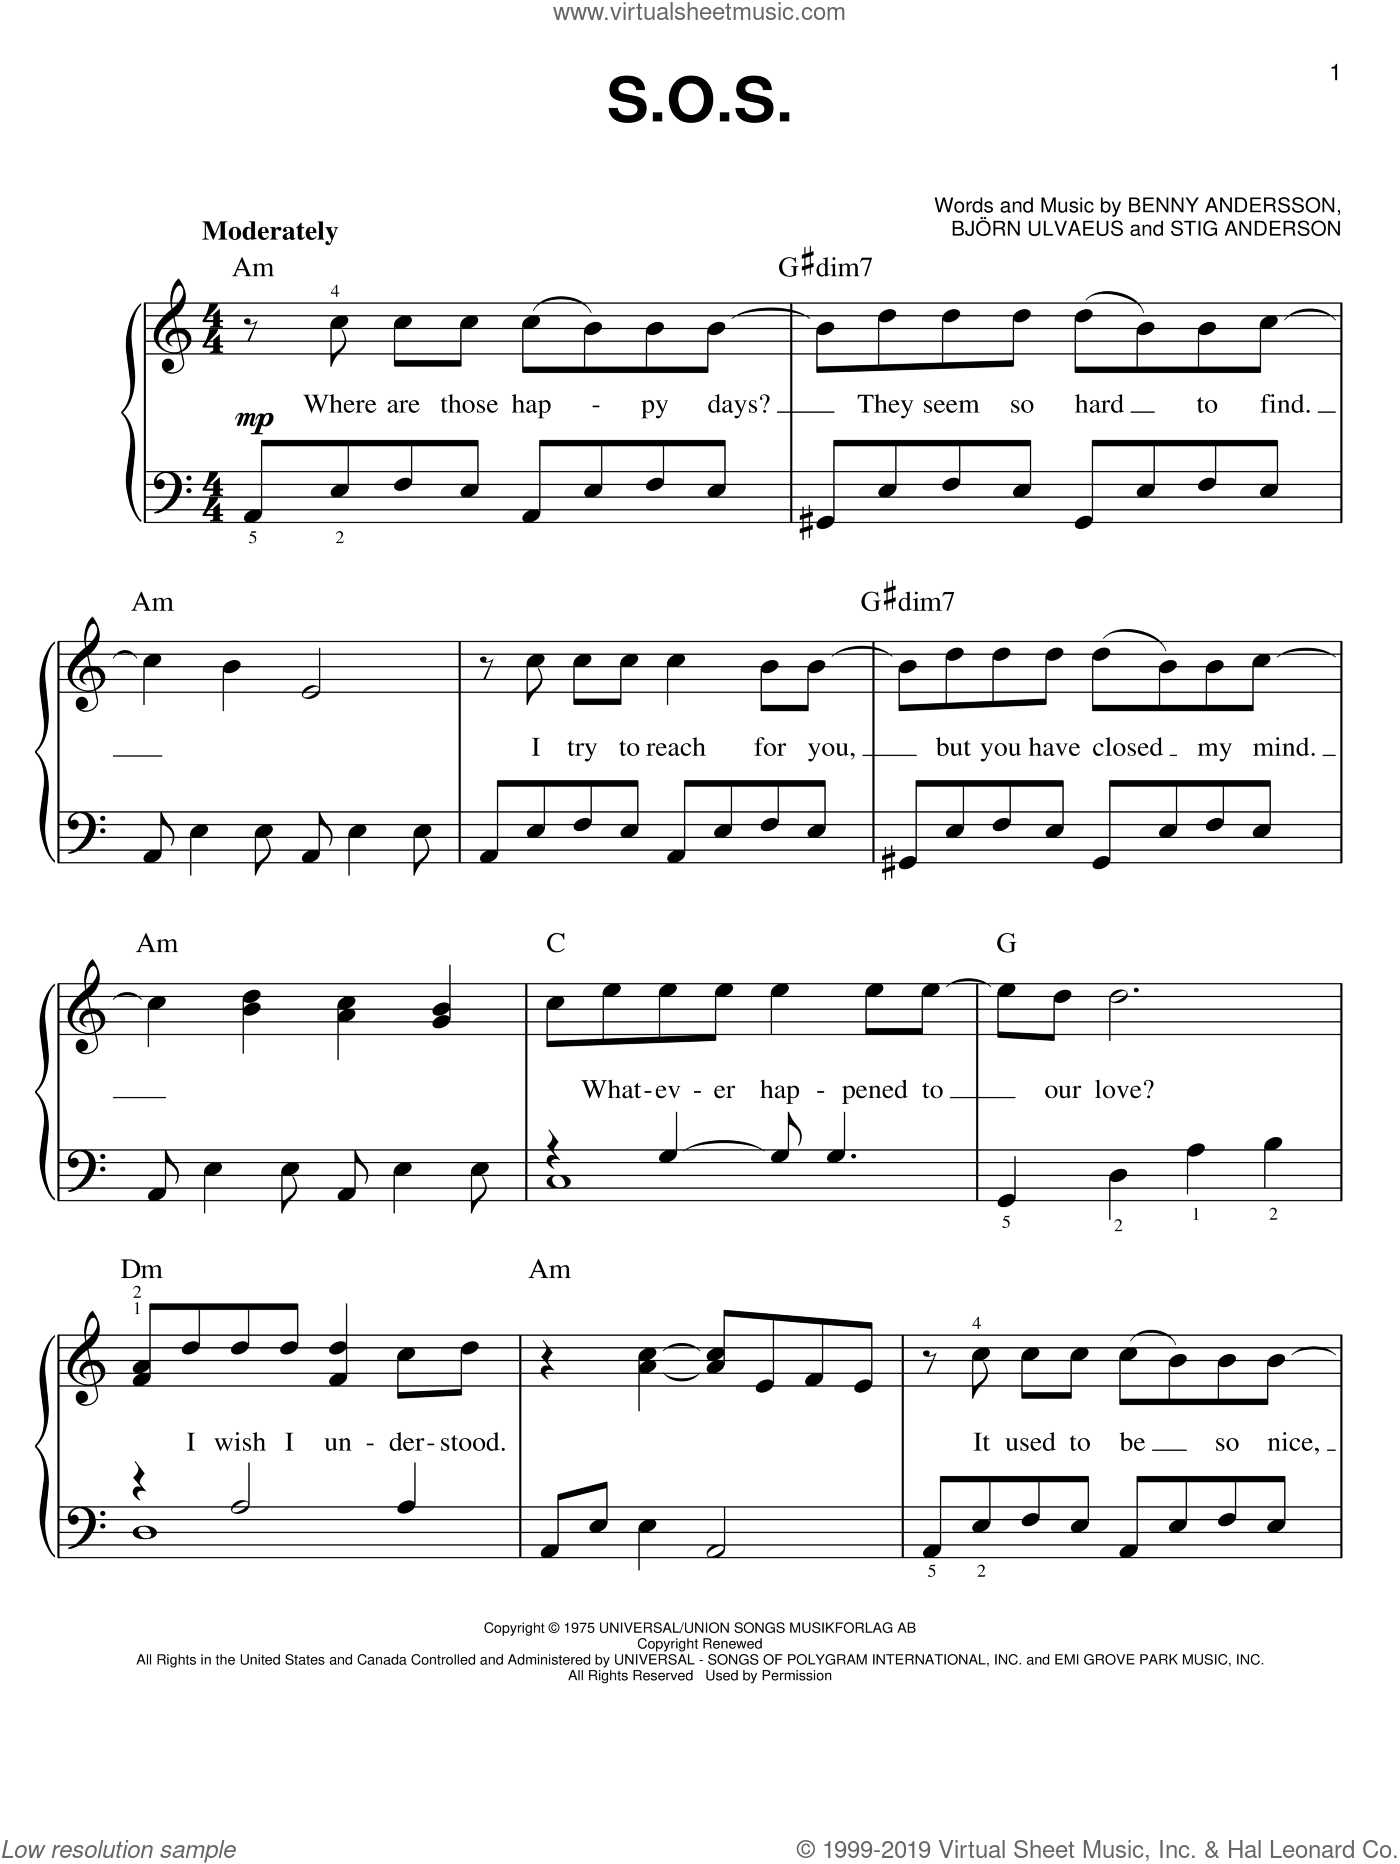 S.O.S. sheet music for piano solo by ABBA, Mamma Mia! (Movie), Mamma Mia! (Musical), Benny Andersson, Bjorn Ulvaeus and Stig Anderson, easy skill level